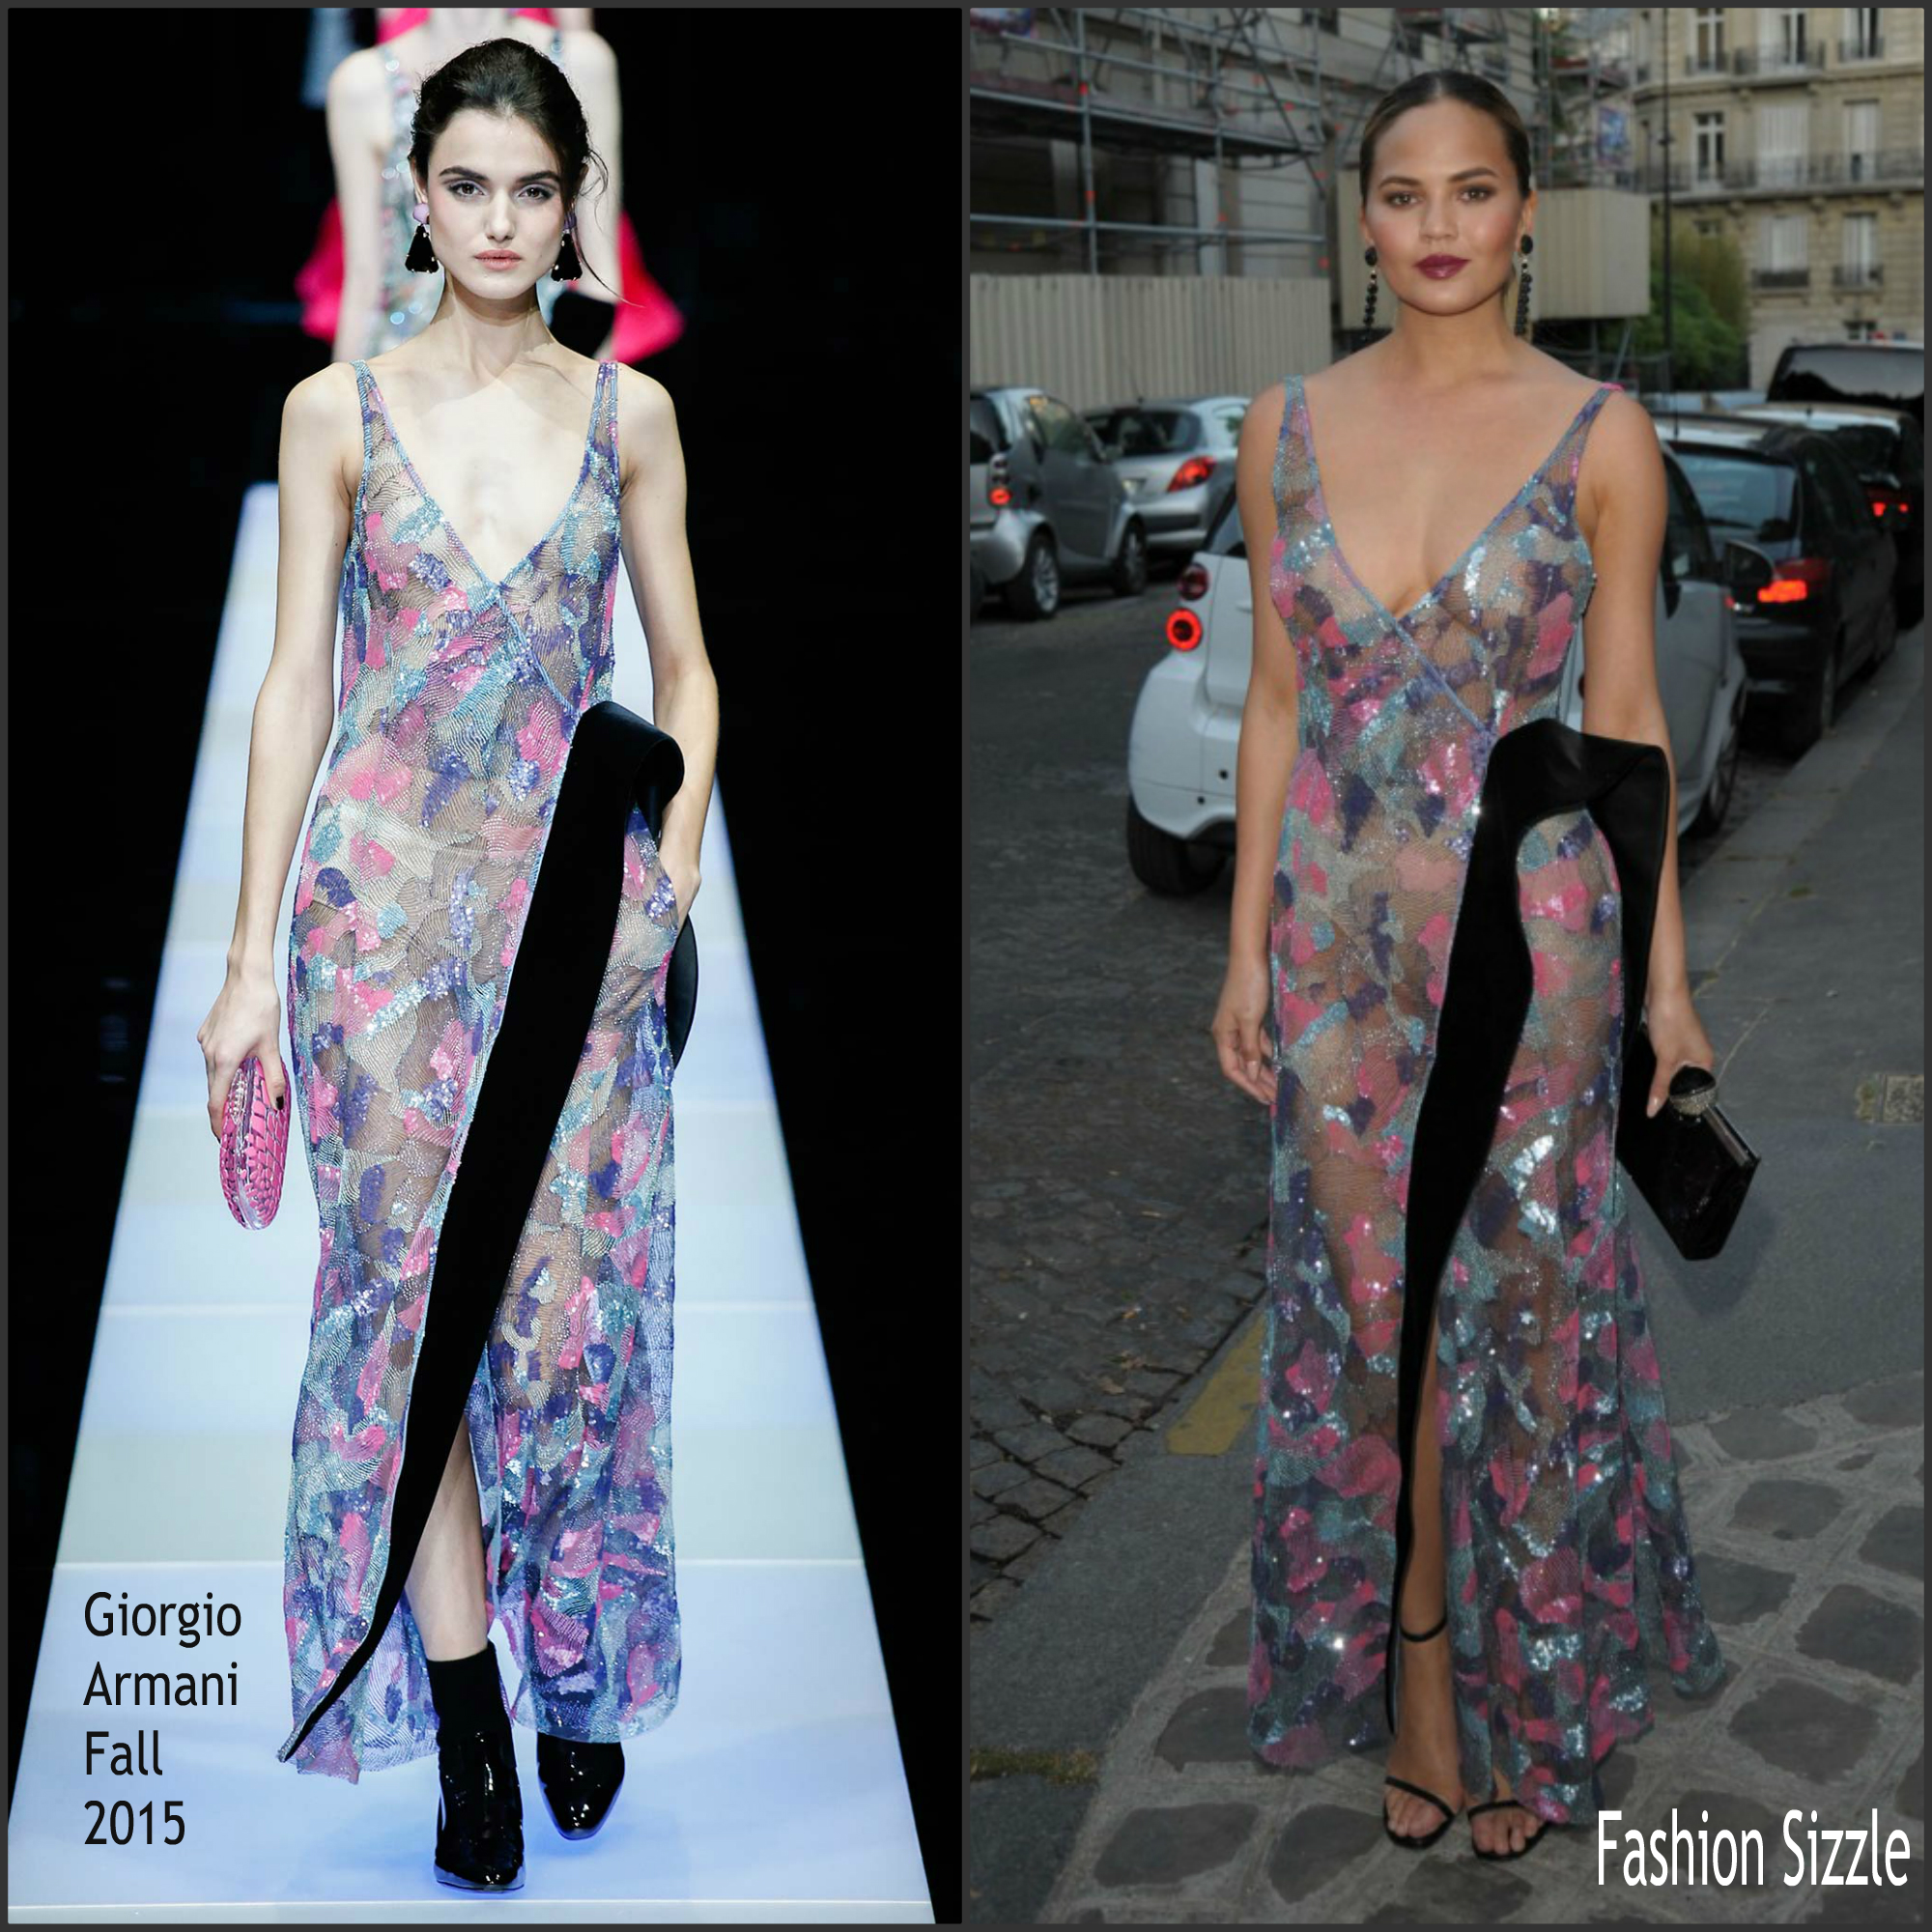 chrissy-teigen-in-giorgio-armani-vogue-paris-foundation-gala